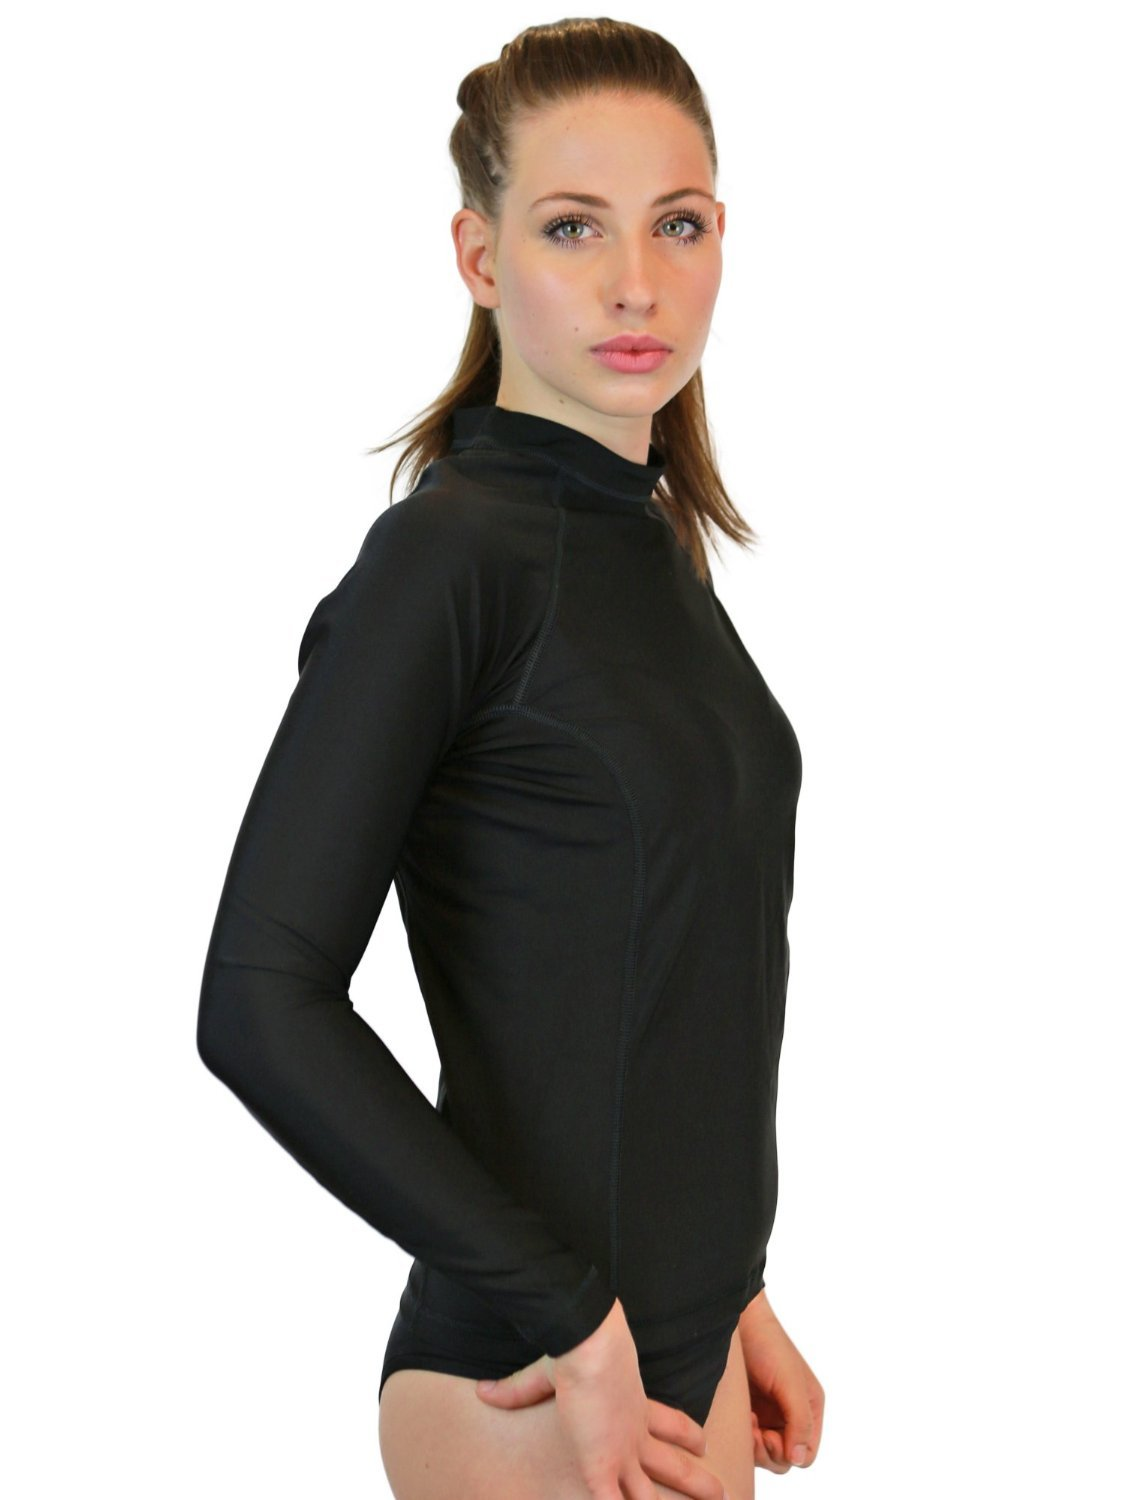 Rash Guard Women Long Sleeve - Womens Swim Shirt - MADE IN USA - ON SALE TODAY - Goddess Rash Guards Are The Ultimate Athletic Compression Shirt. Perfect for Workouts, Crossfit, Swimming, Surfing, Biking and Even Running. Some Goddess's Use Them As Swimsu